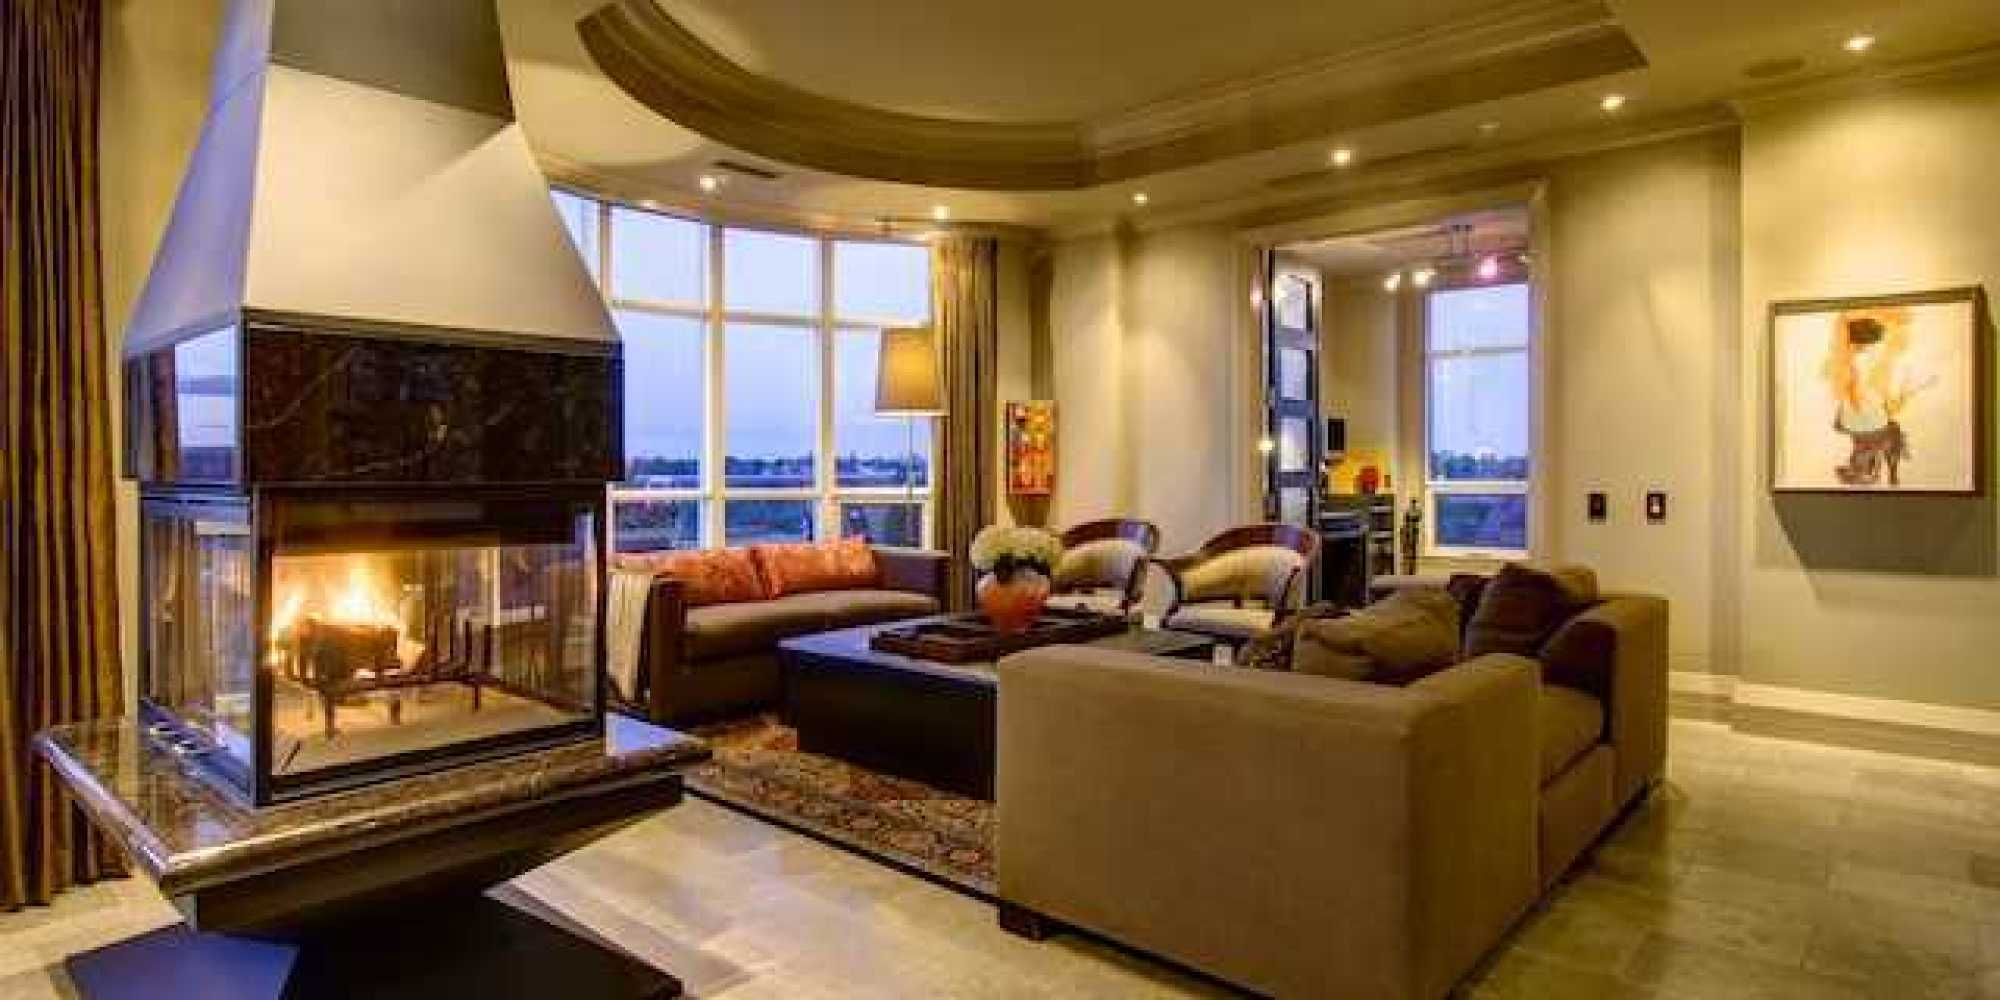 Lifestyle Benefits of Calgary Condos - Great Views